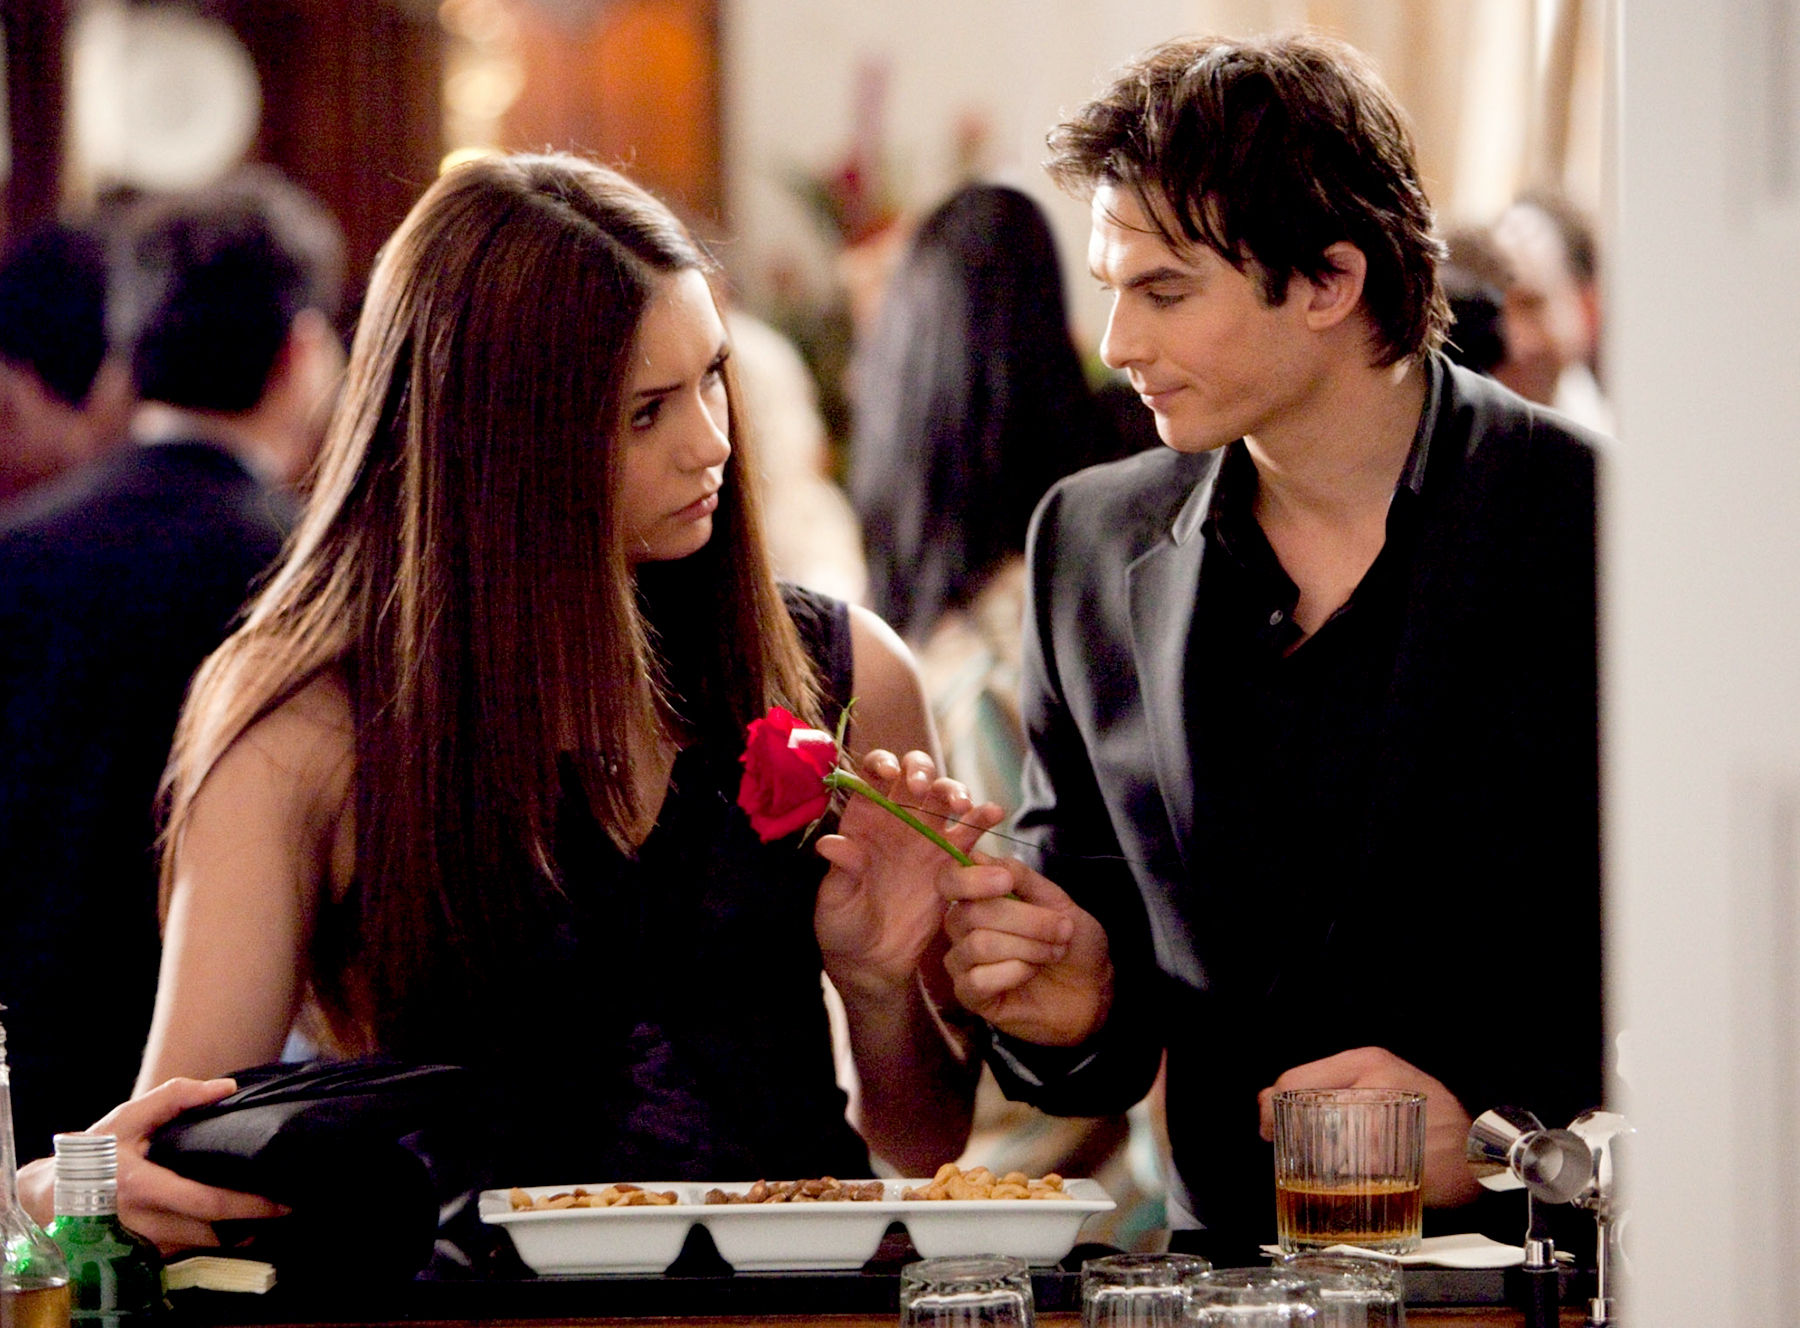 Nina Dobrev as Elena and Ian Somerhalder as Damon